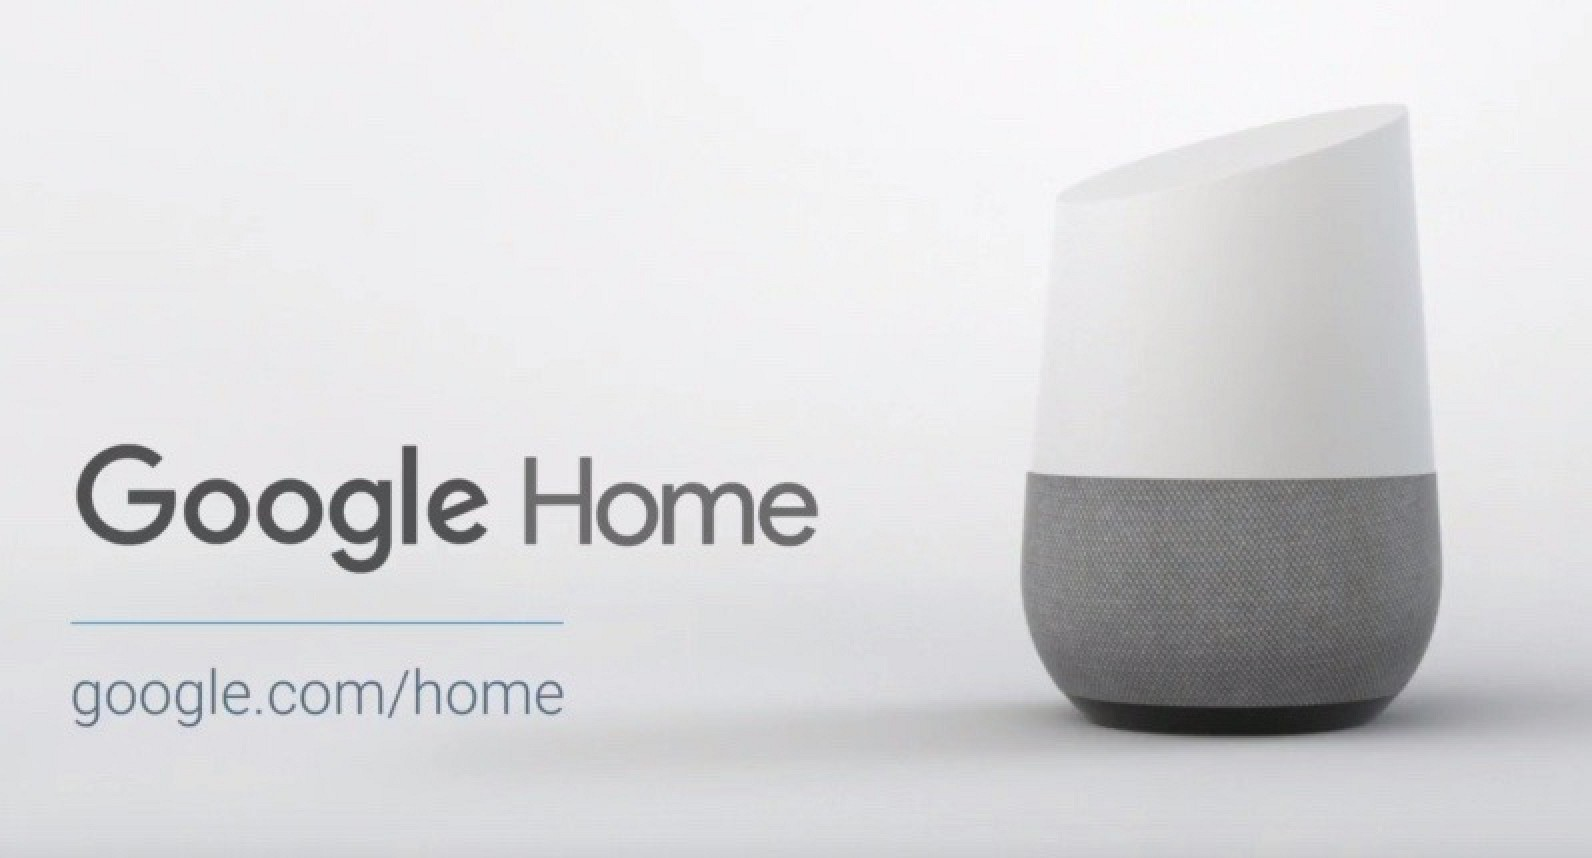 google 39 s echo rival is a 39 dressed up 39 version of chromecast mac rumors. Black Bedroom Furniture Sets. Home Design Ideas